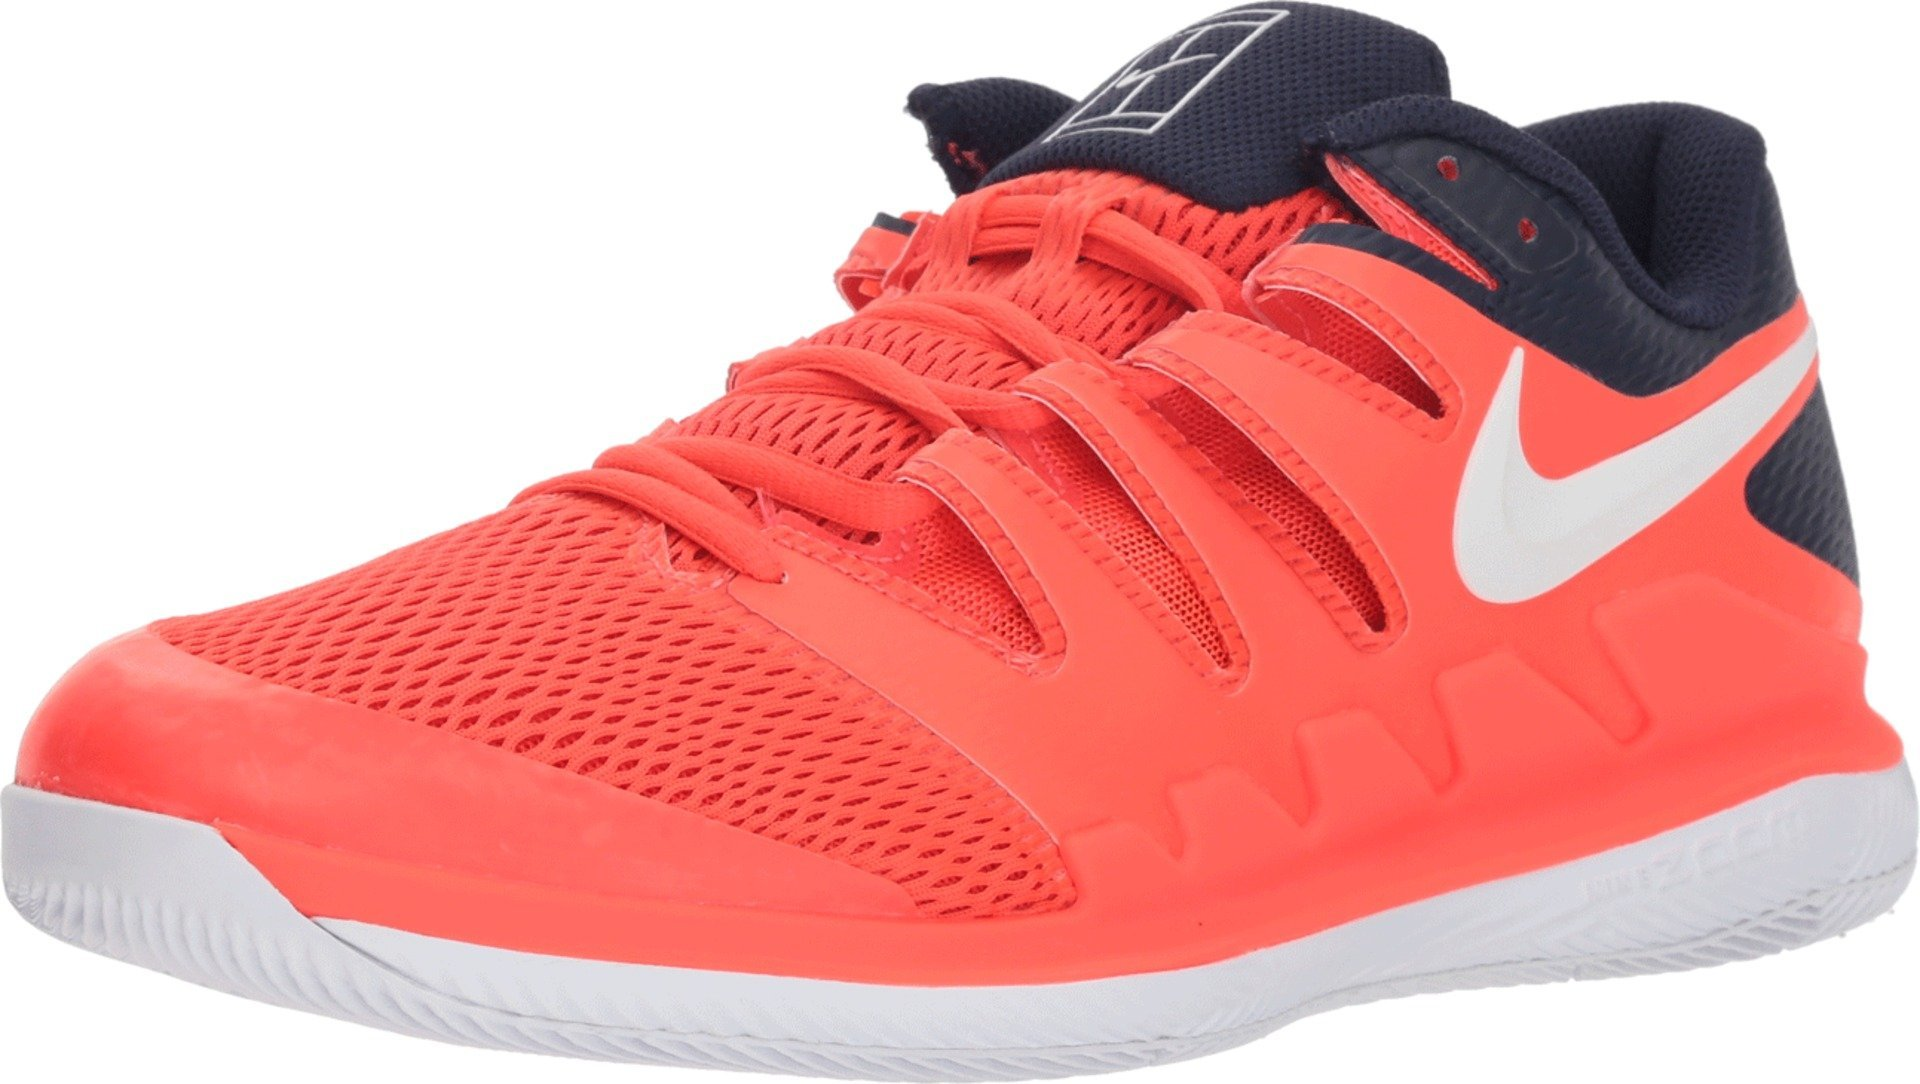 f7a375bf25aaa Nike Men's Zoom Vapor X Tennis Shoes (12 D US, Bright  Crimson/White/Blackened Blue)